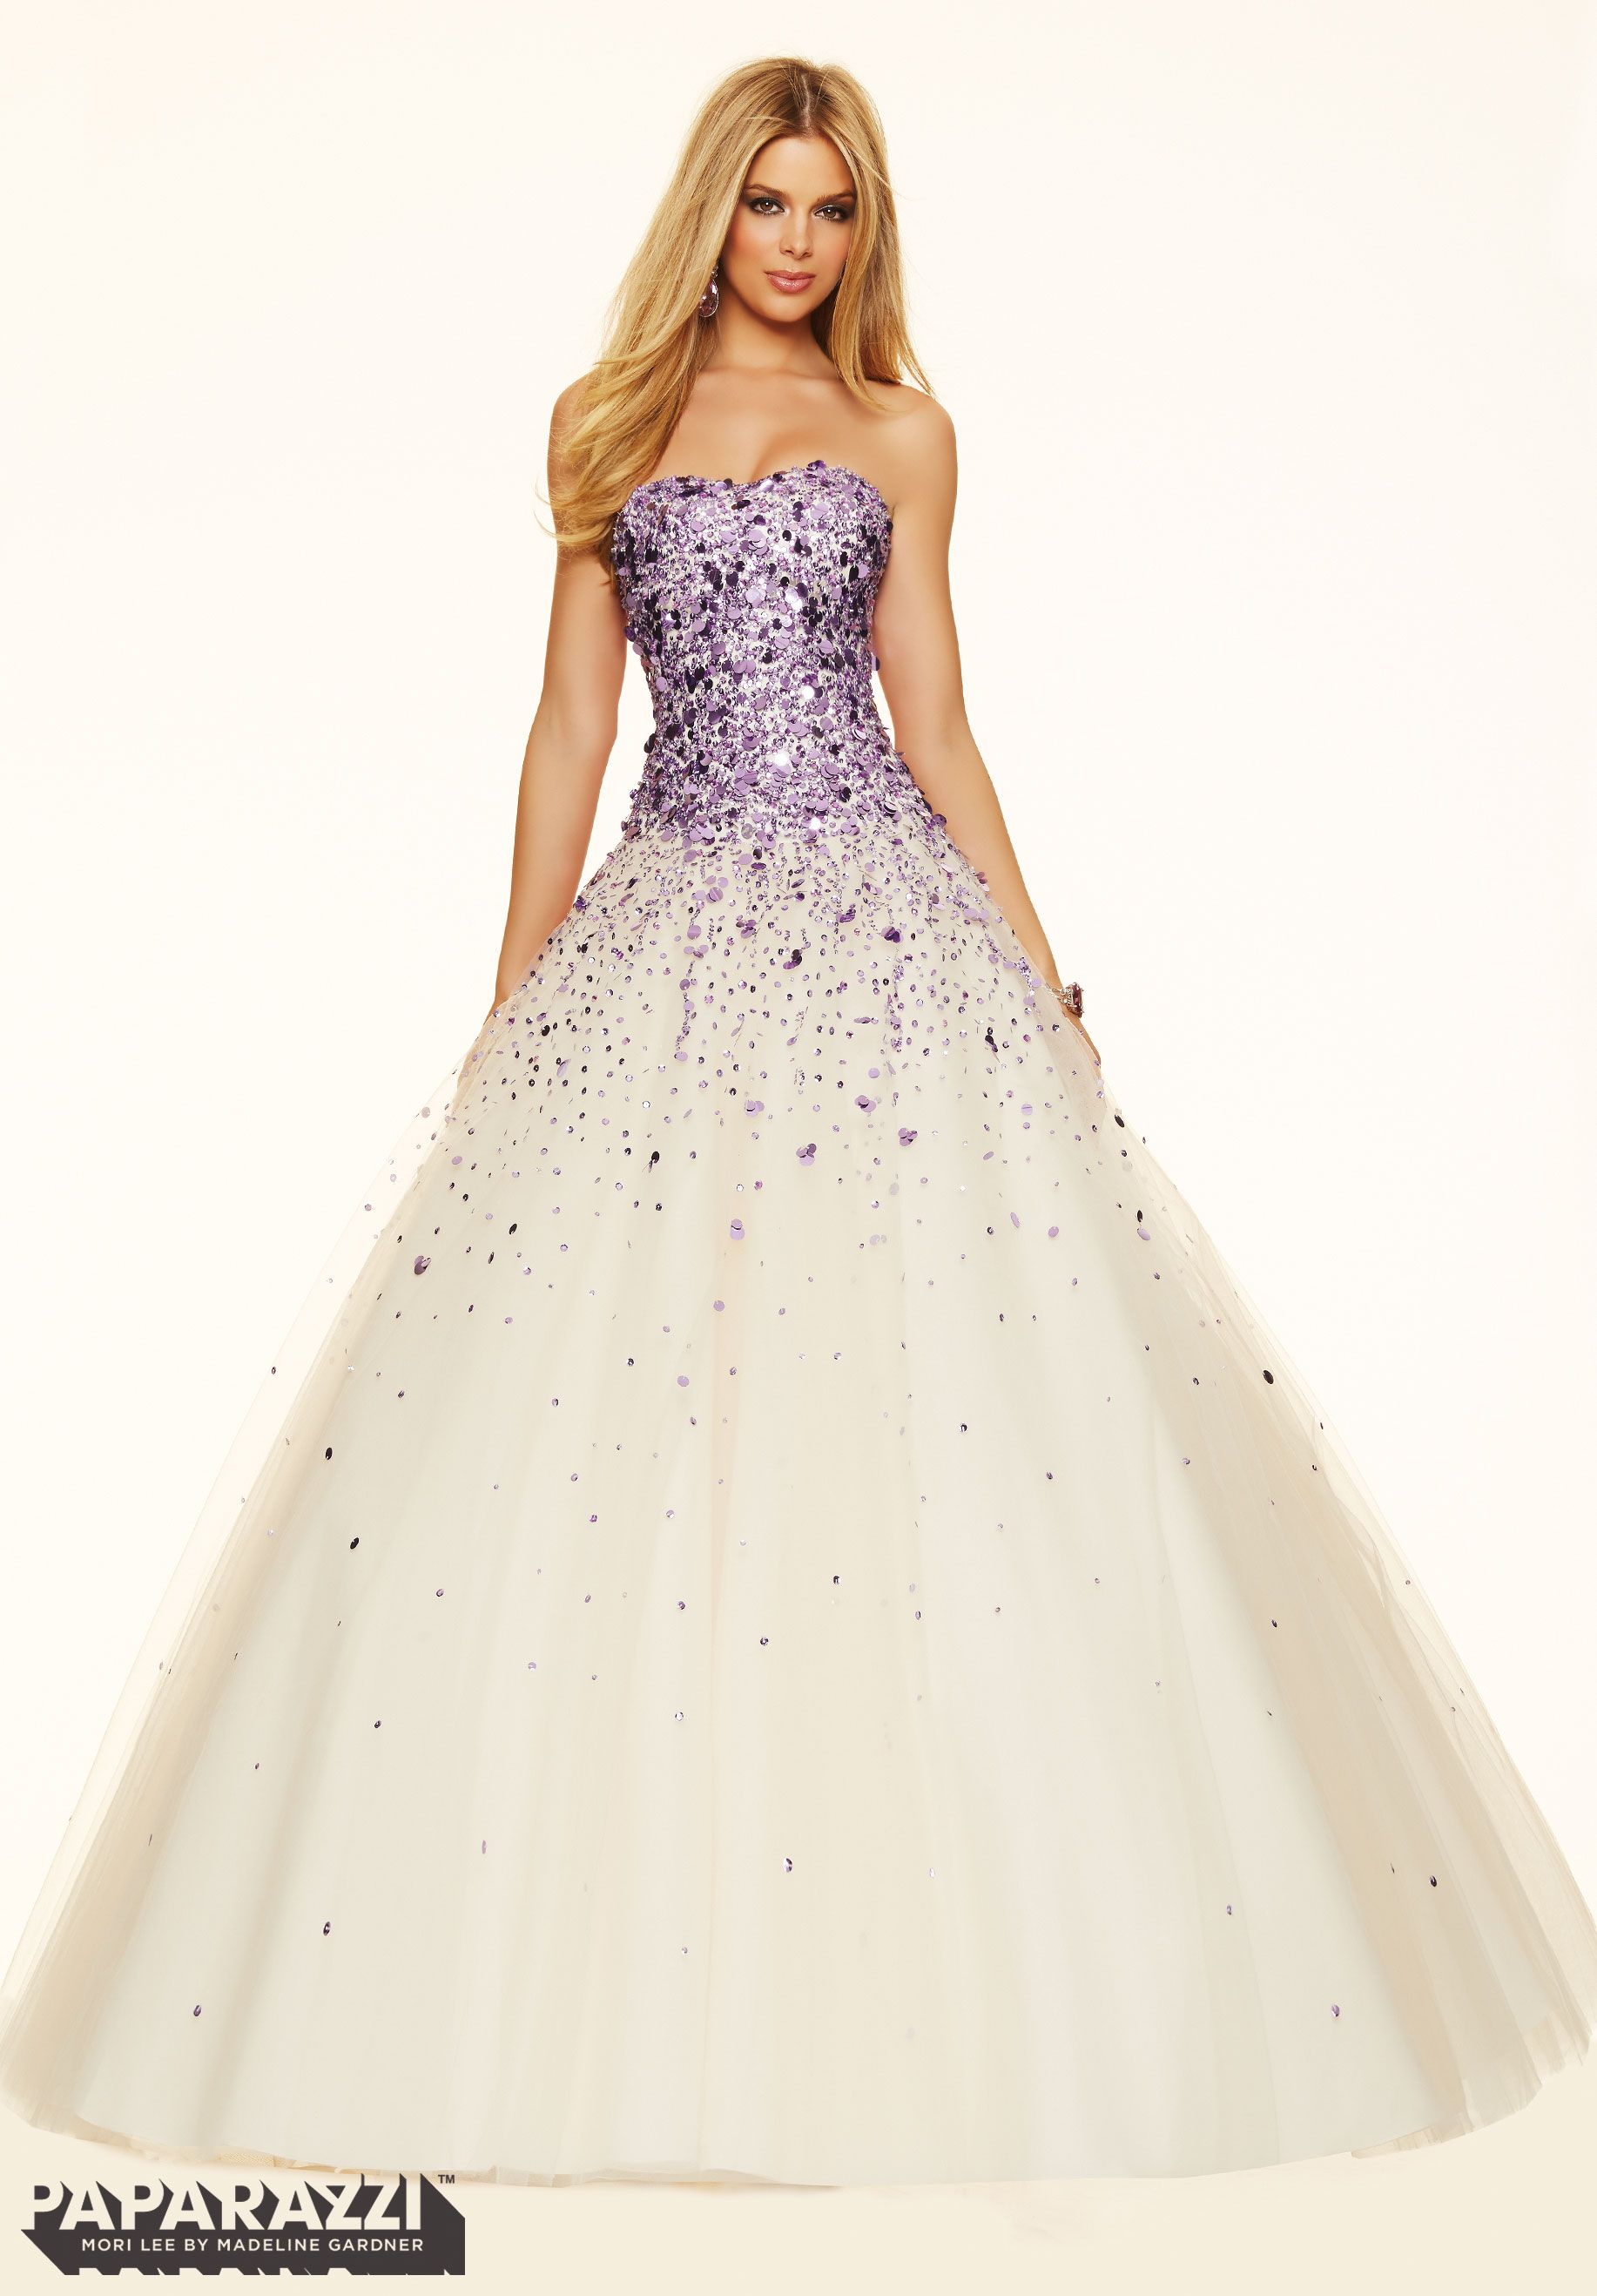 Prom Dresses by Paparazzi Prom - Dress Style 98021 | PROM ...